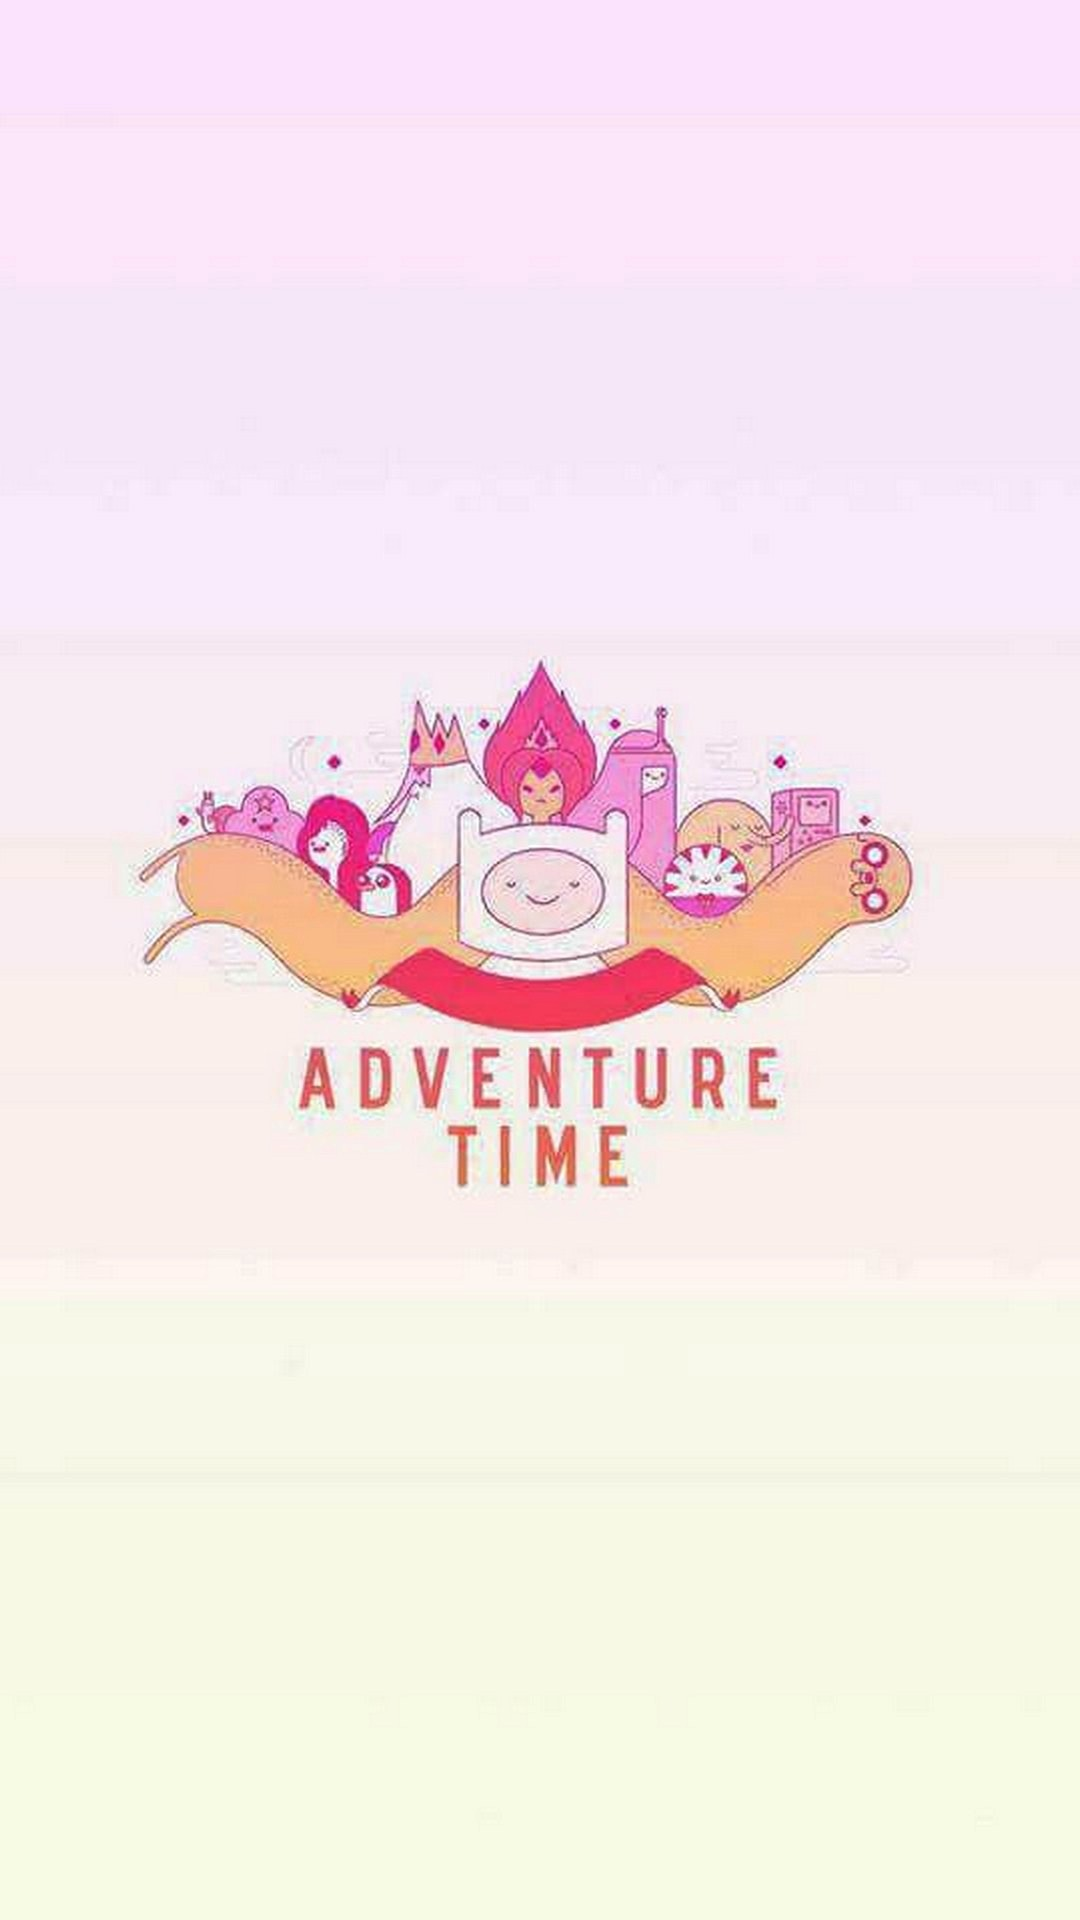 Iphone Wallpaper Adventure Time With High-resolution - Cute Adventure Time Background , HD Wallpaper & Backgrounds